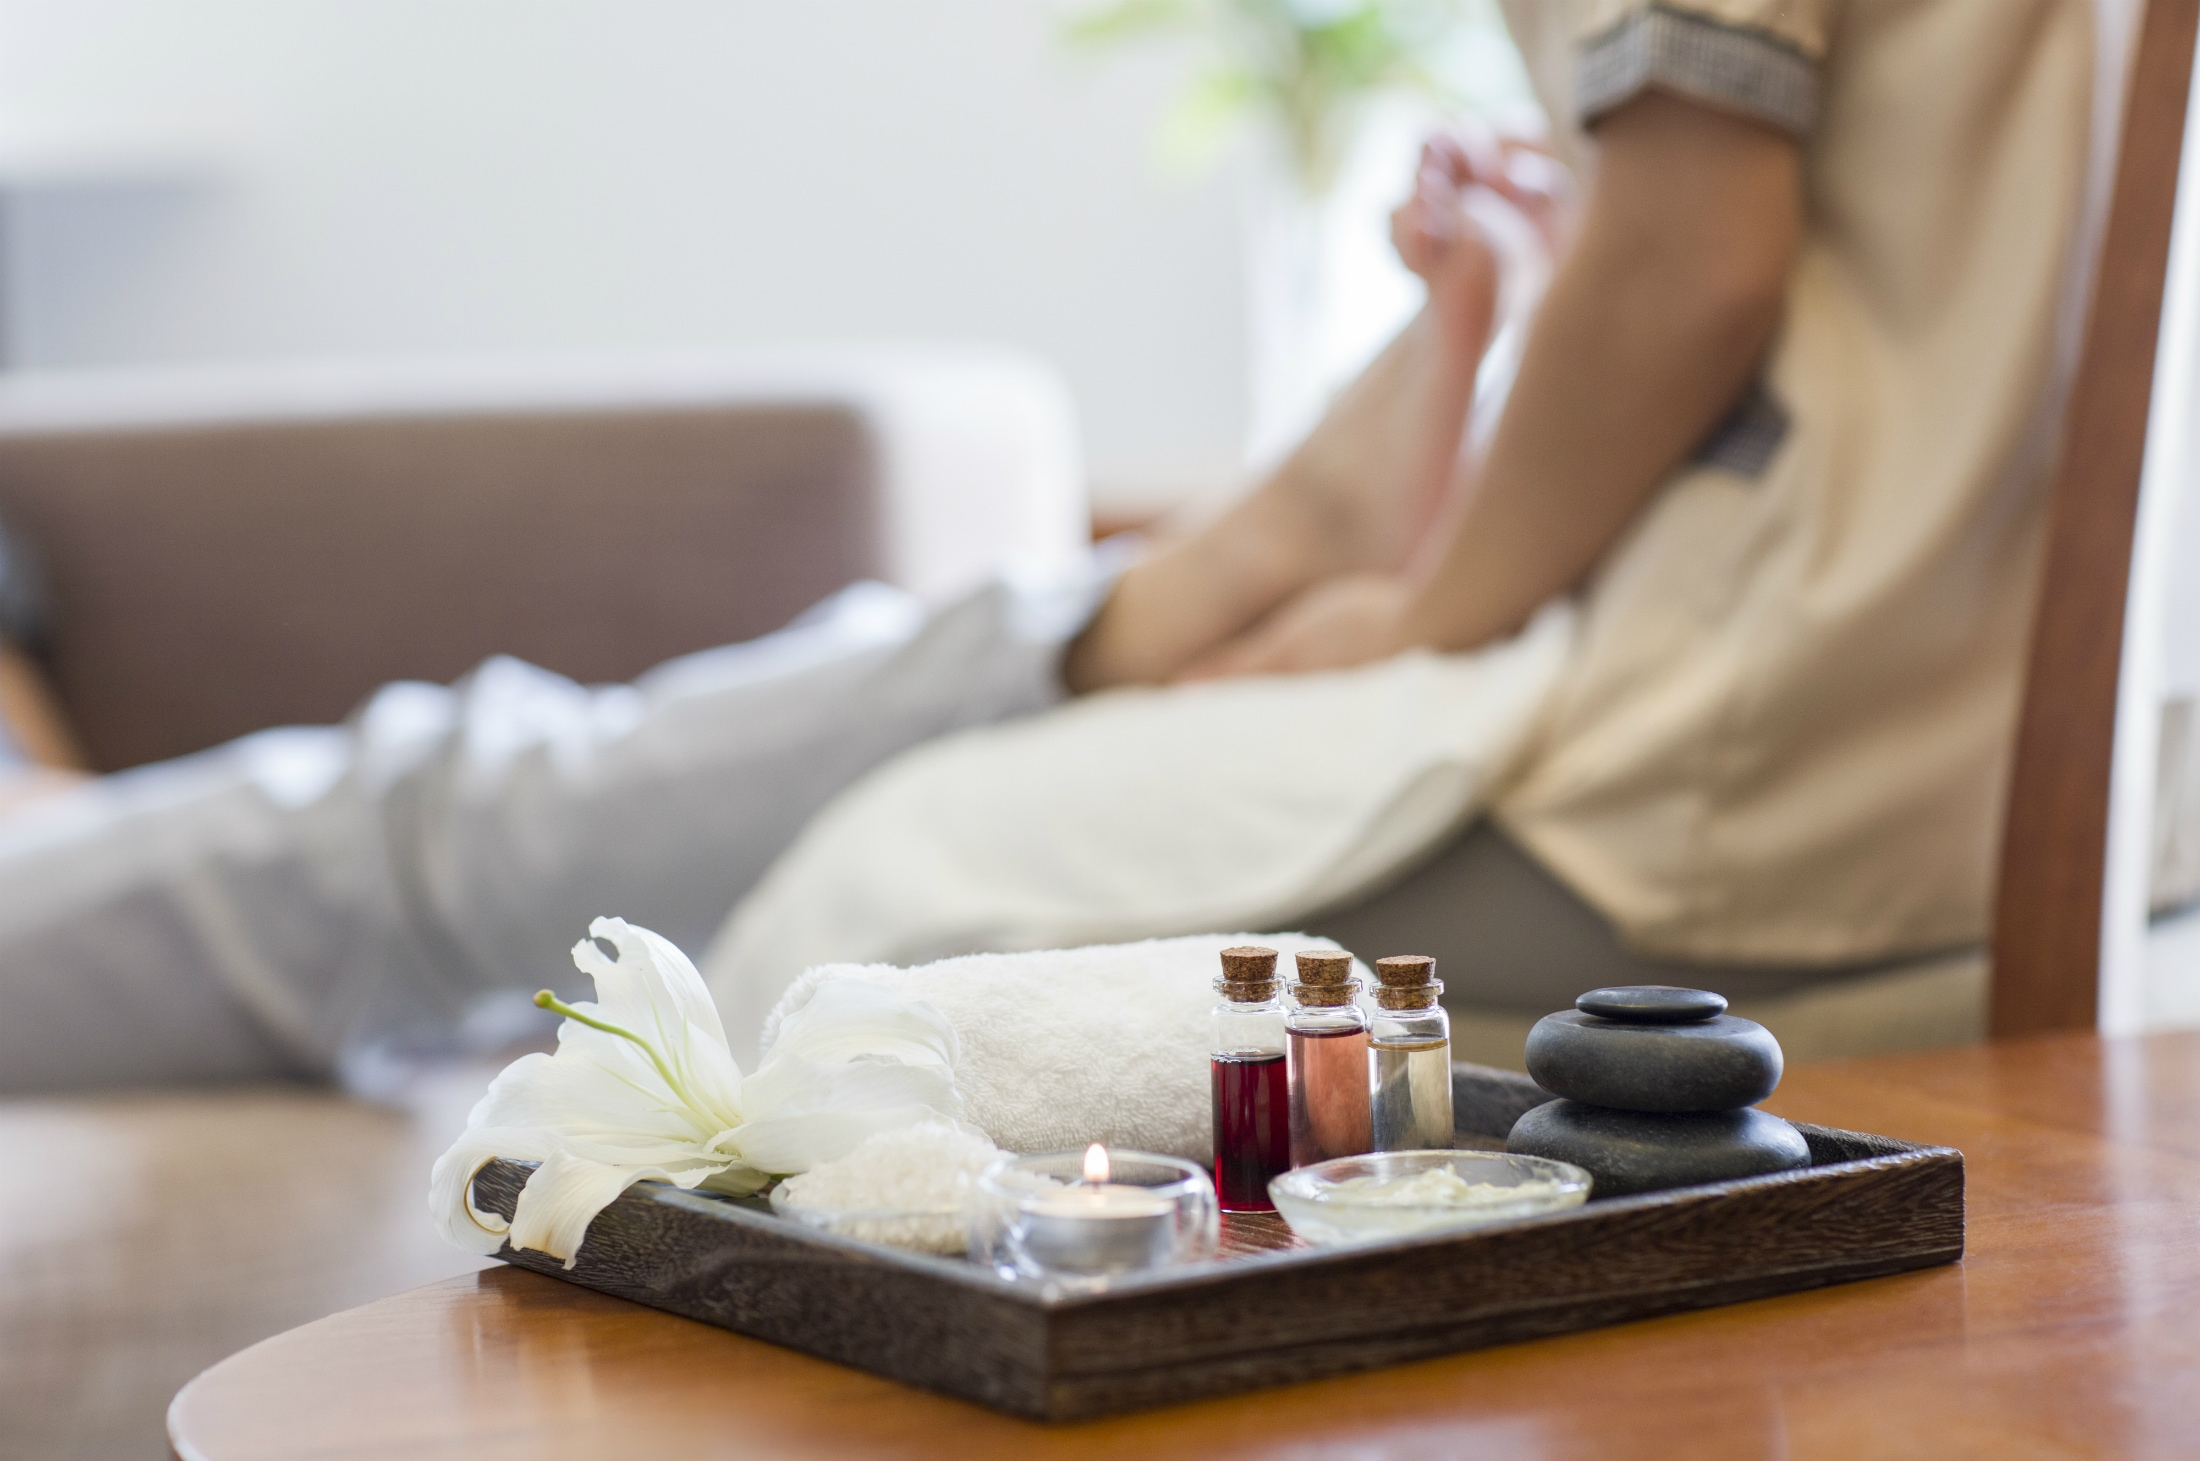 The ultimate Mother's Day treat - a relaxing foot massage